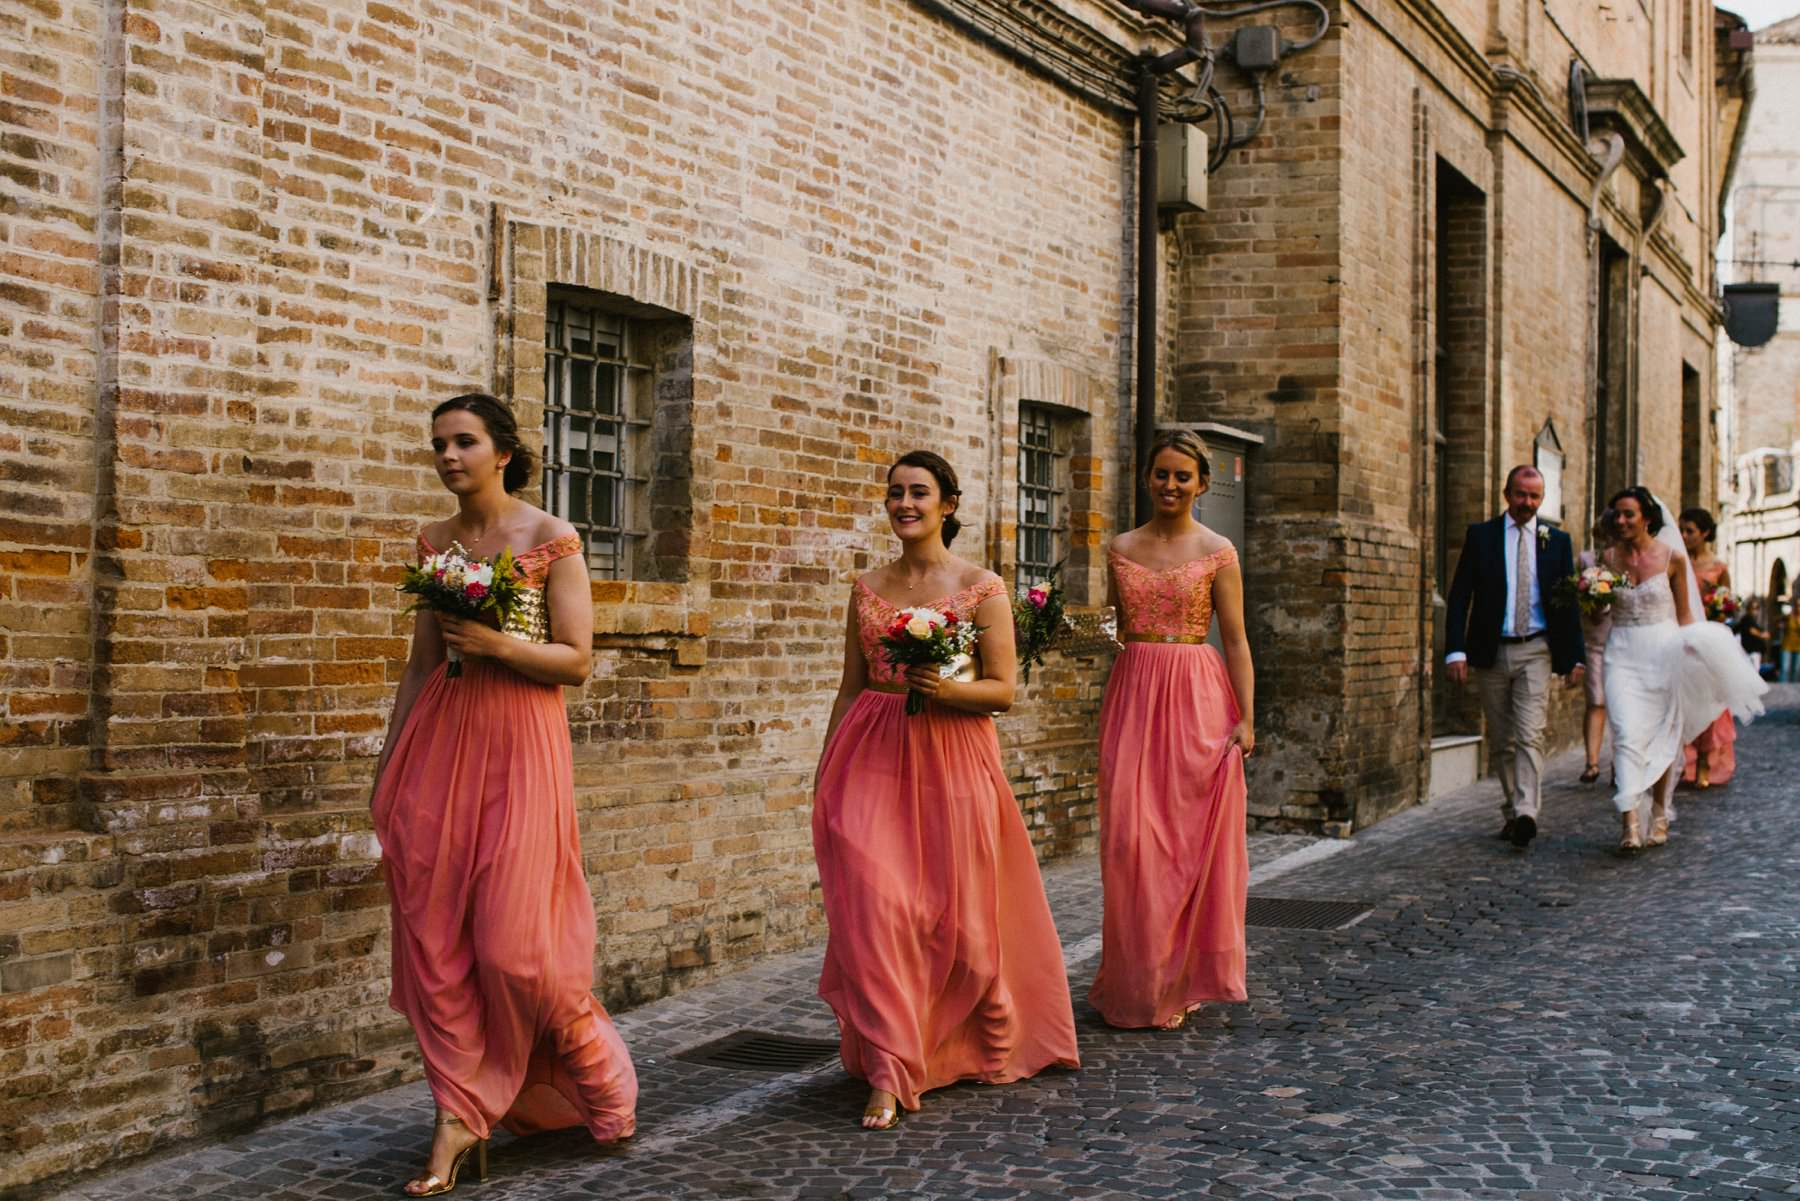 bride and bridesmaids arrive to chapel in italy